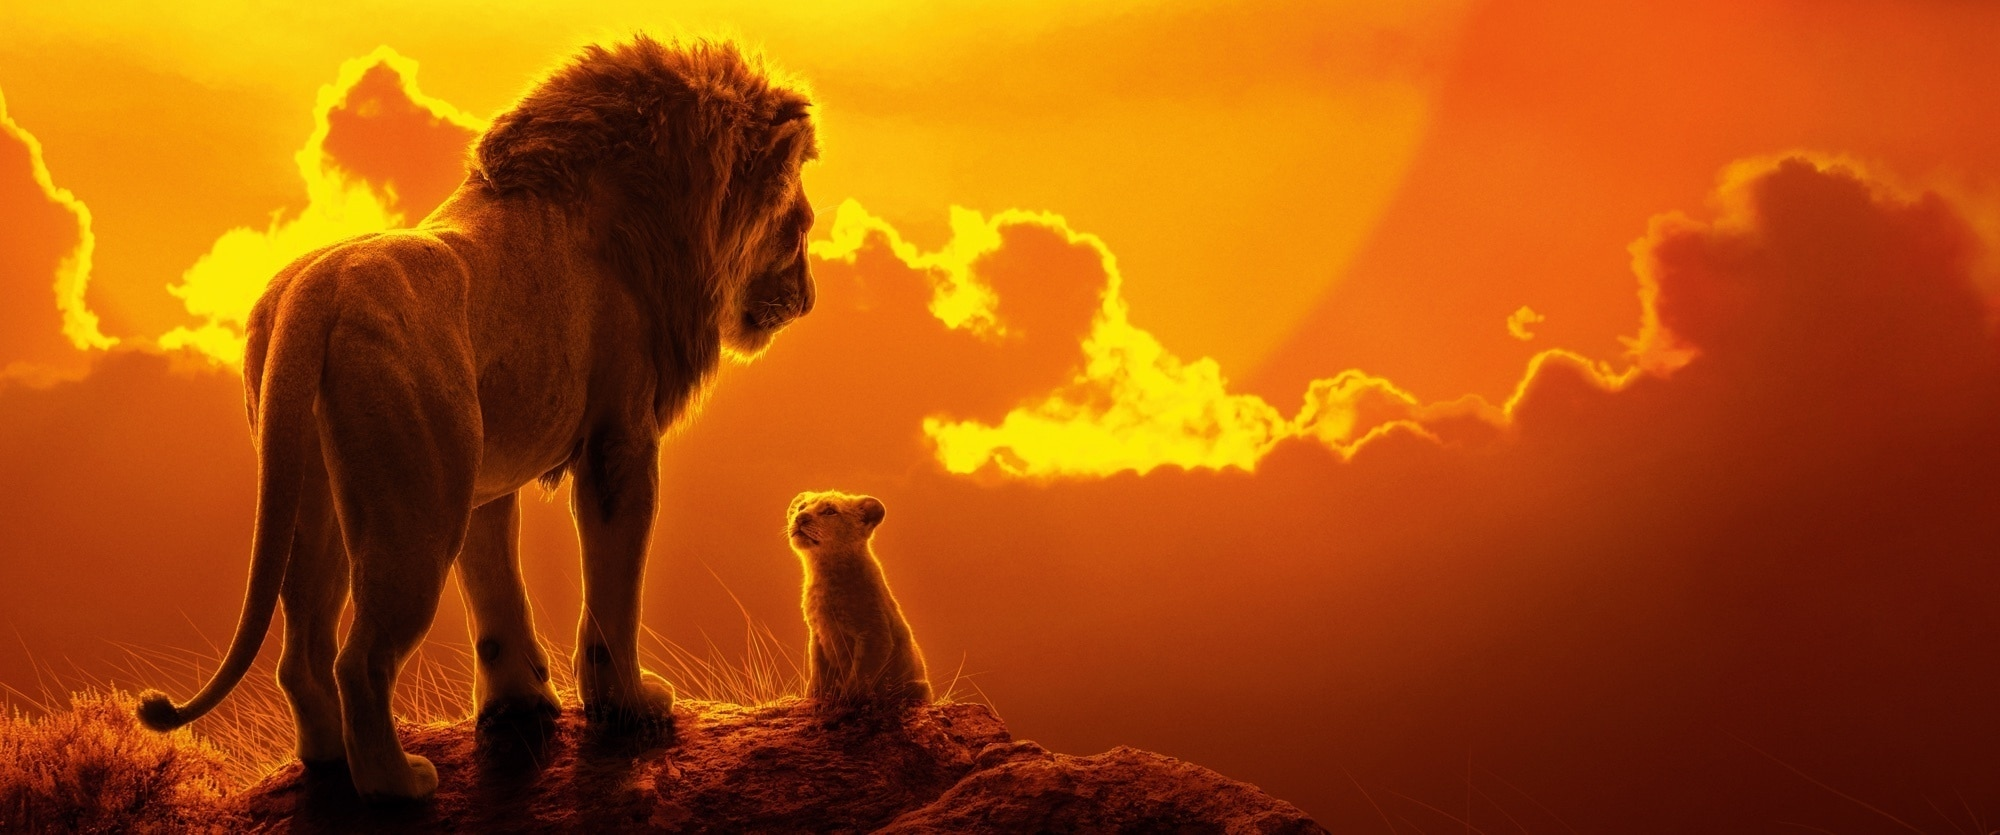 O Rei Leão (The Lion King) 2019 Trailer